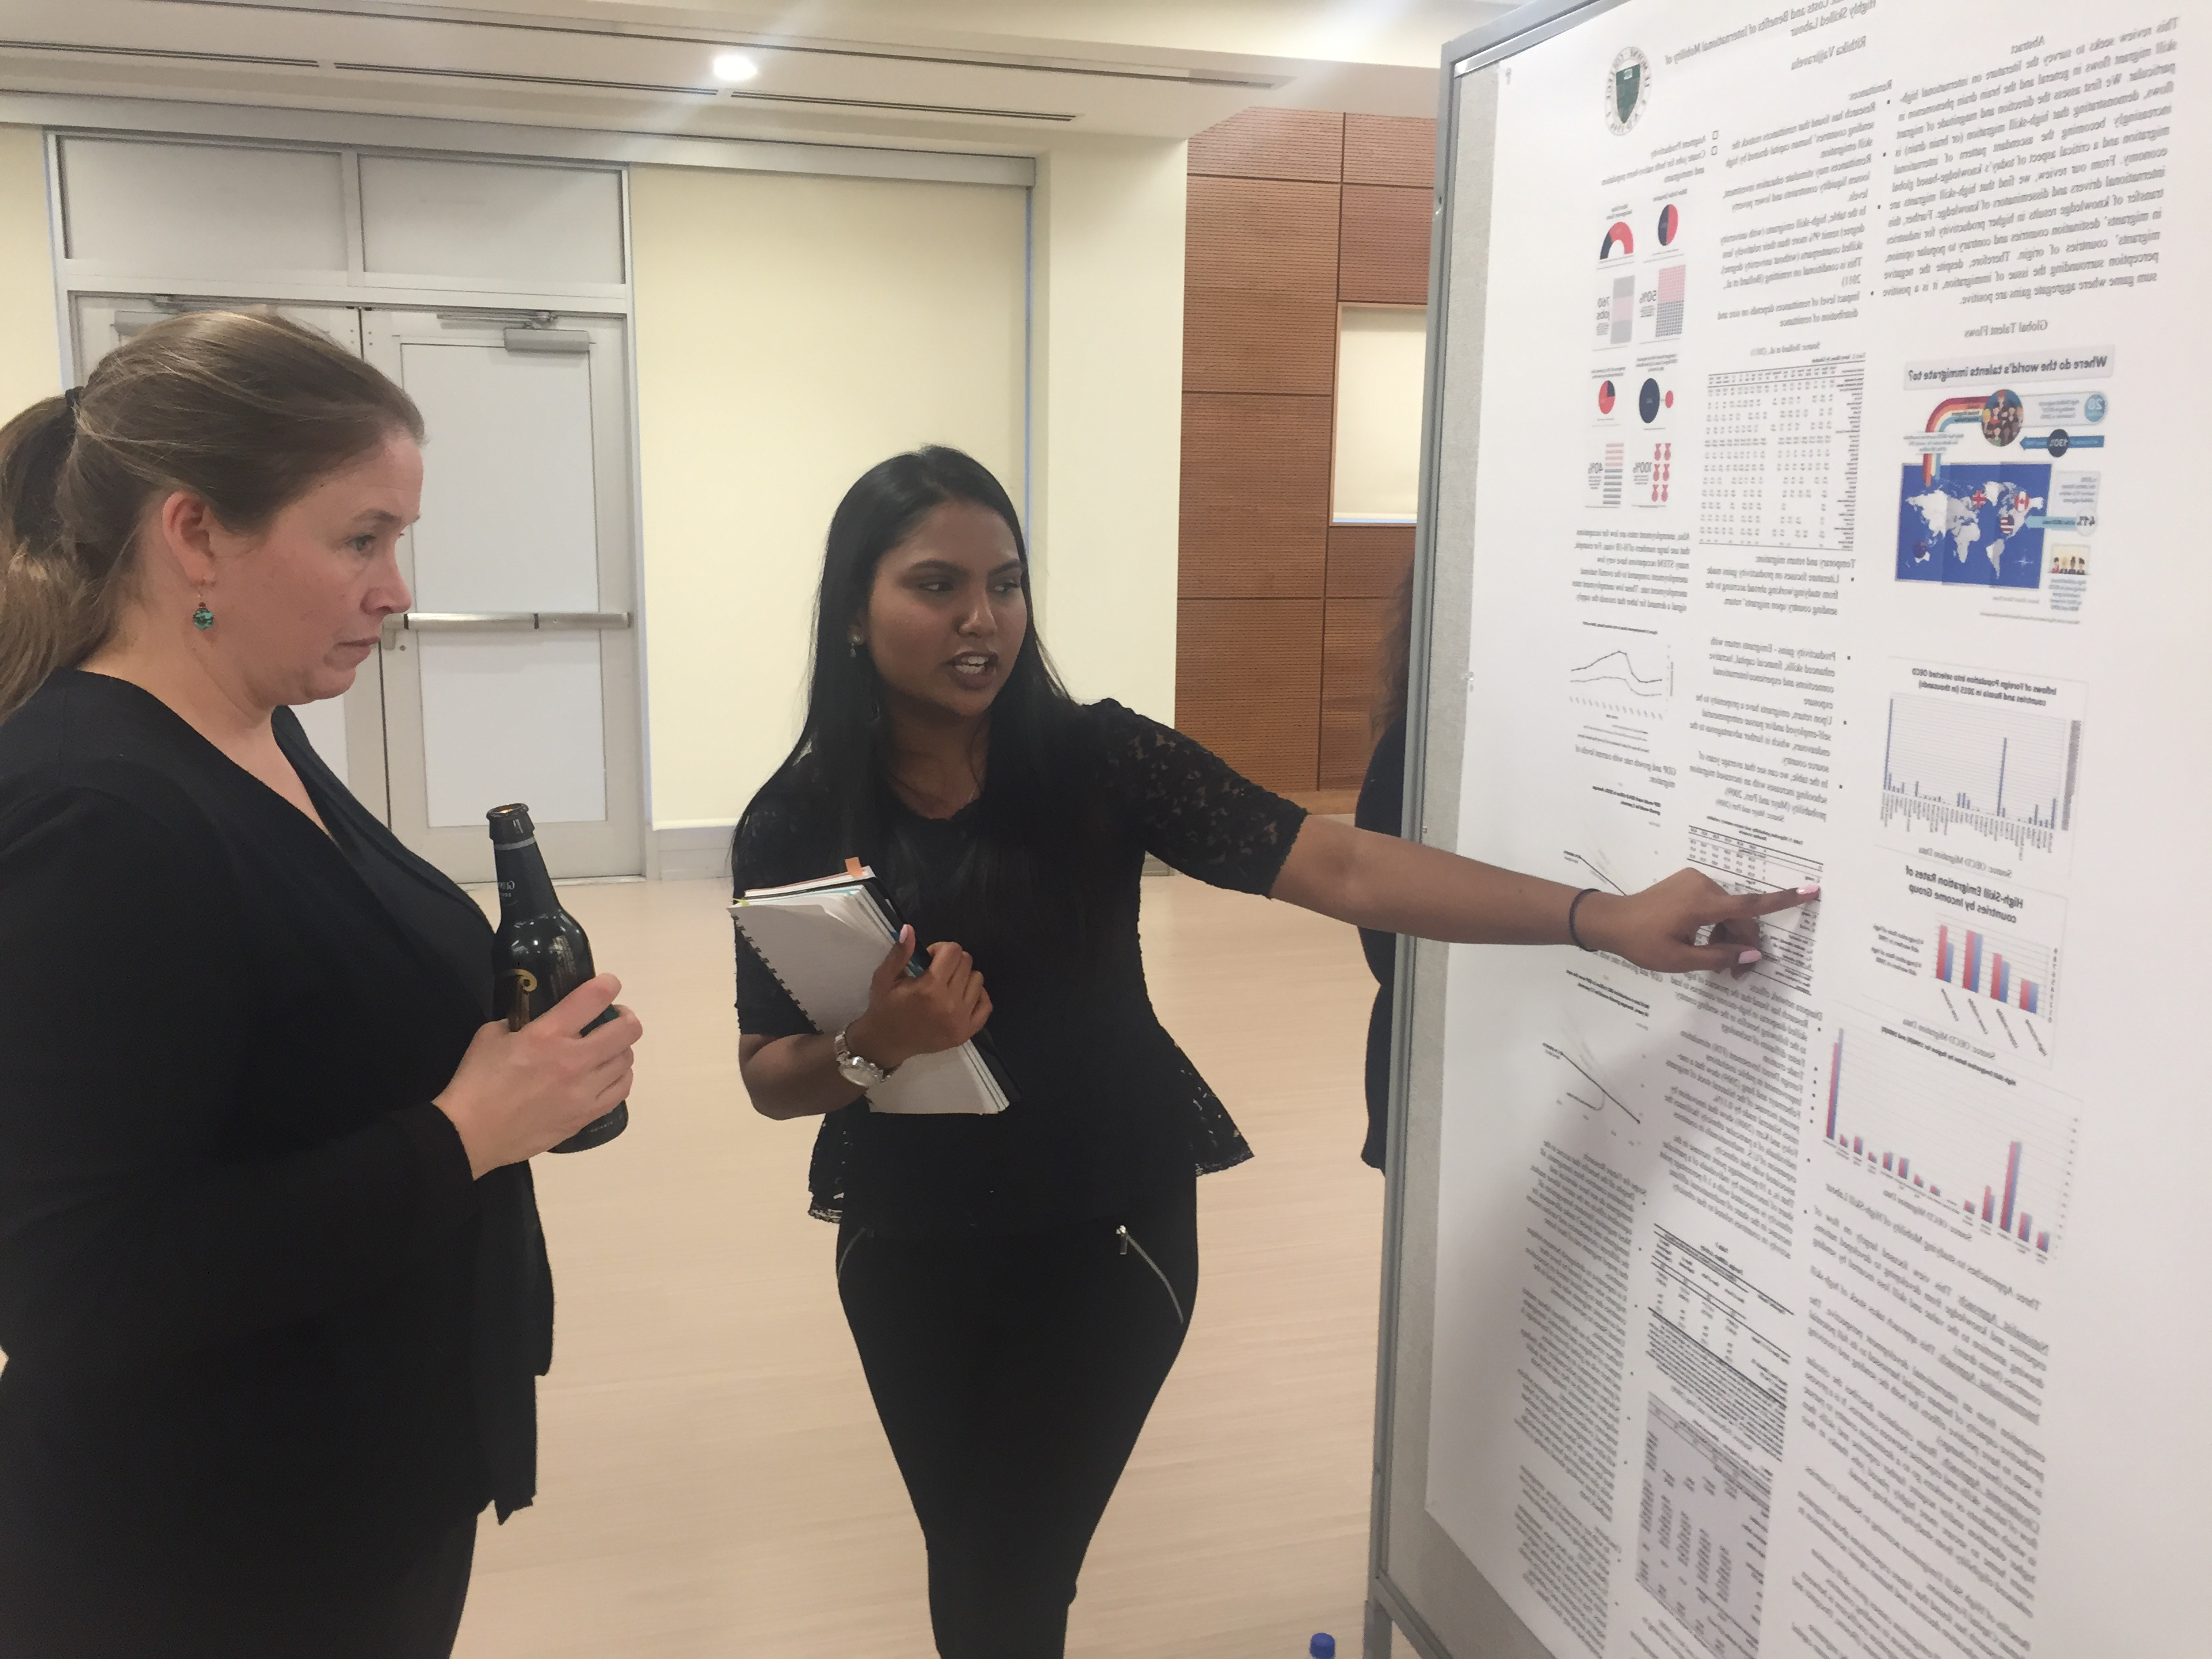 Rithika presenting her research